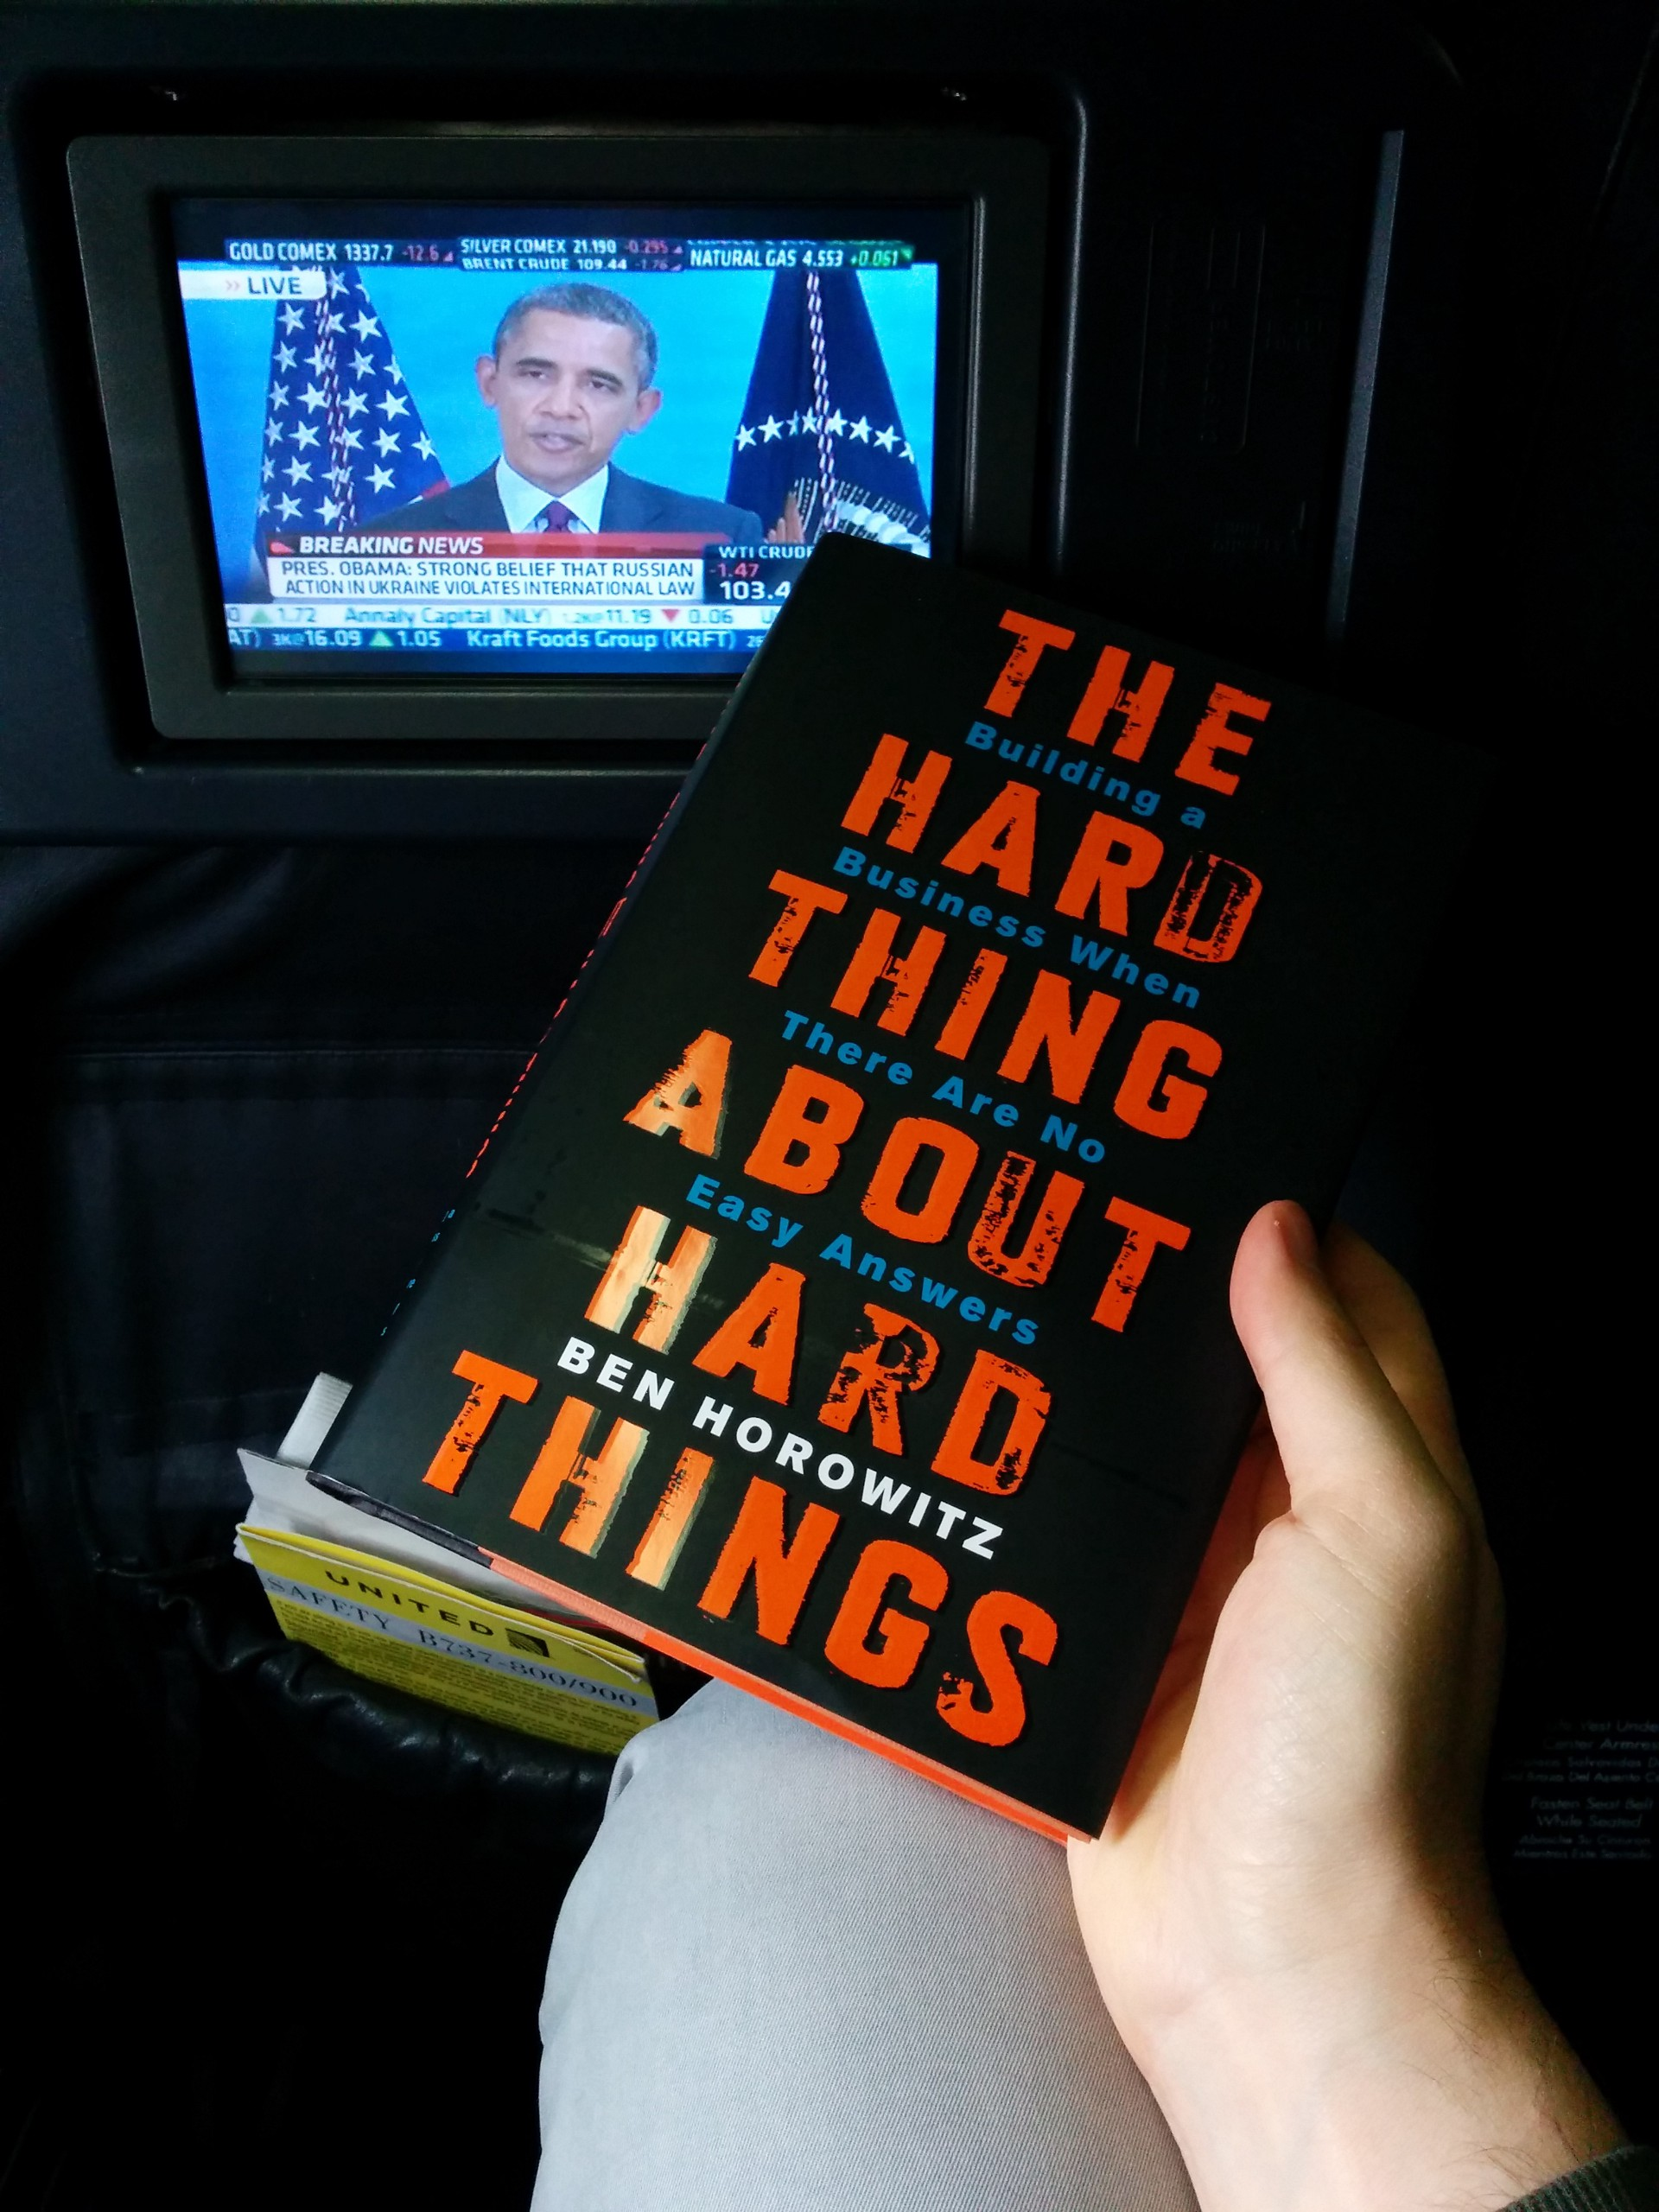 the ugly thing about the hard thing about hard things